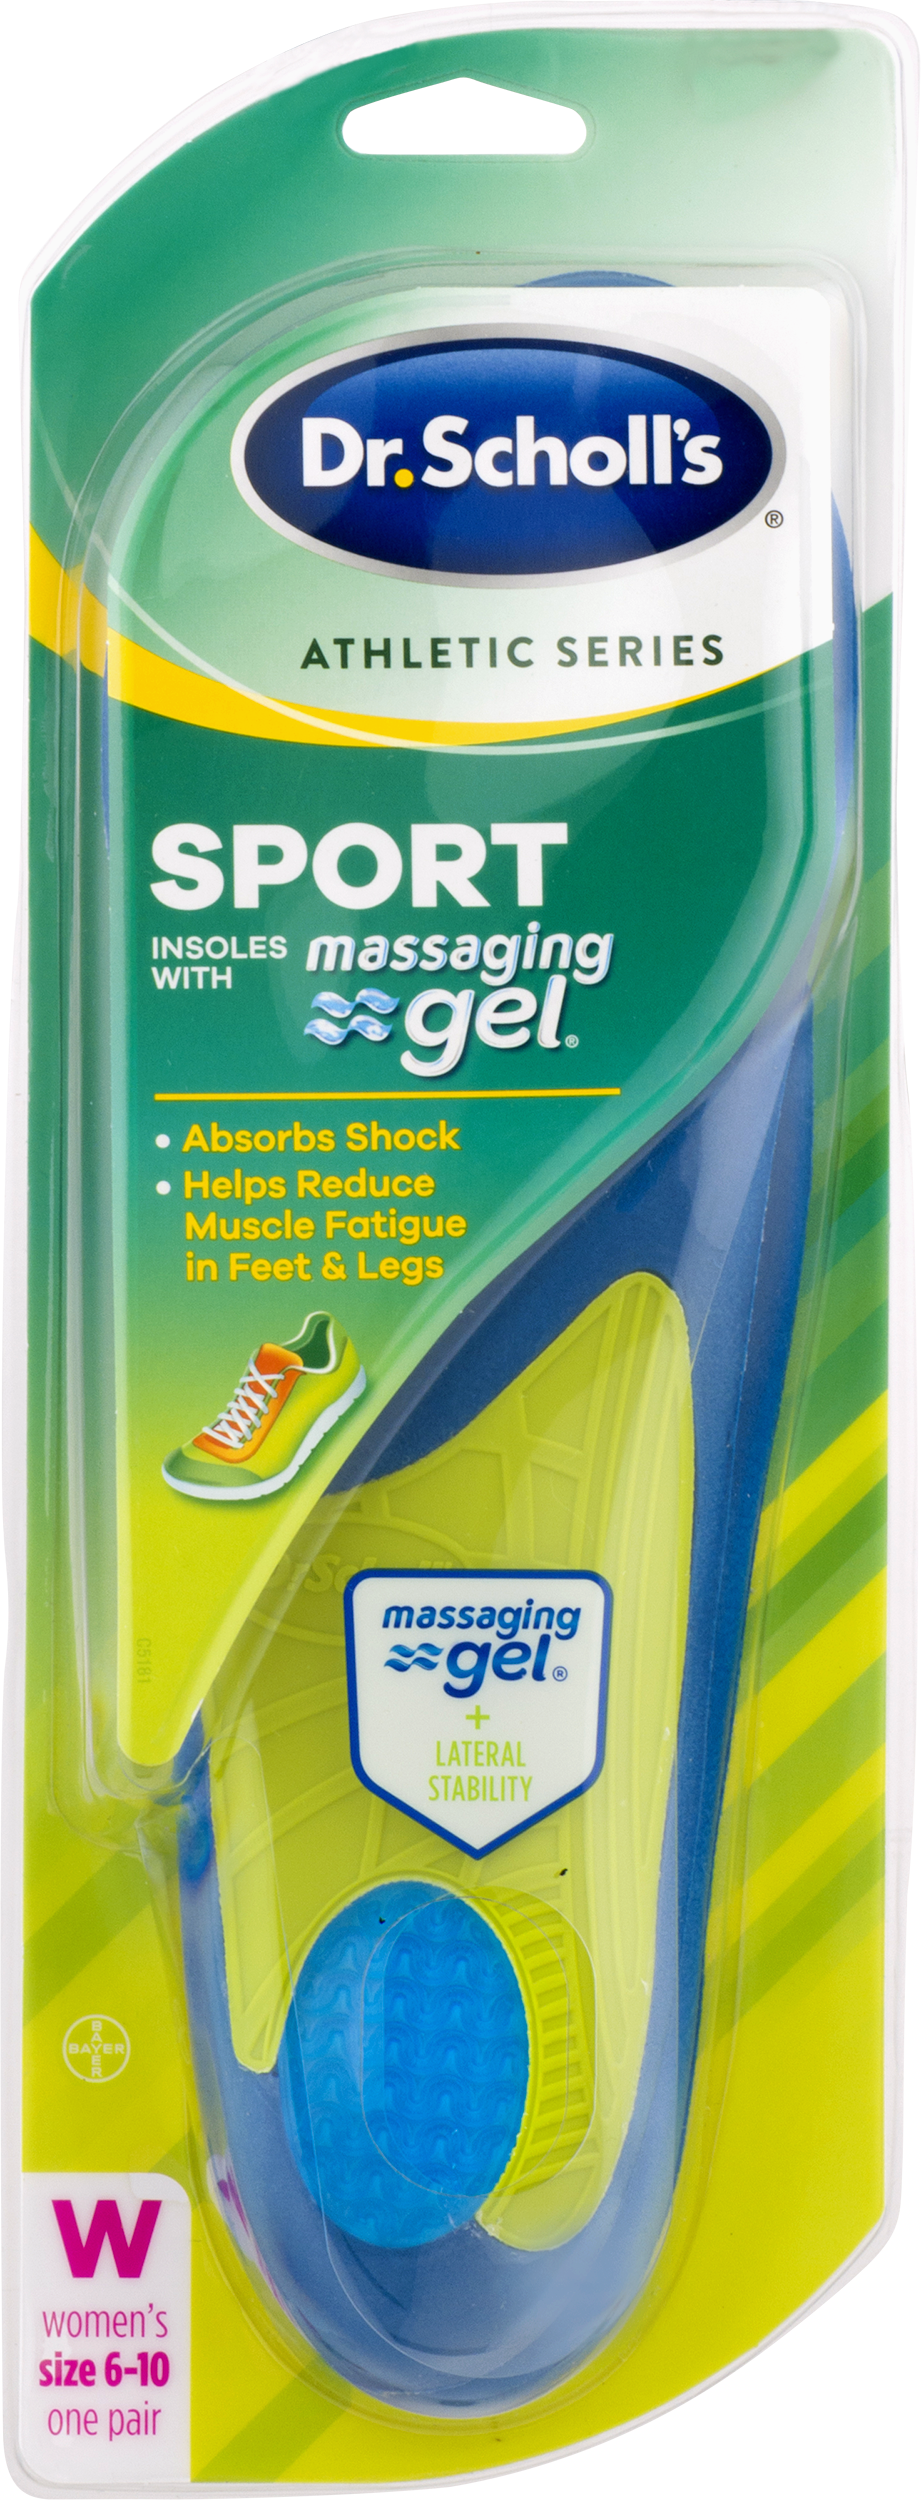 Dr. Scholls Athletic Series Sport Insoles for Men, 1 Pair, Size 10.5-14 by Bayer Healthcare LLC